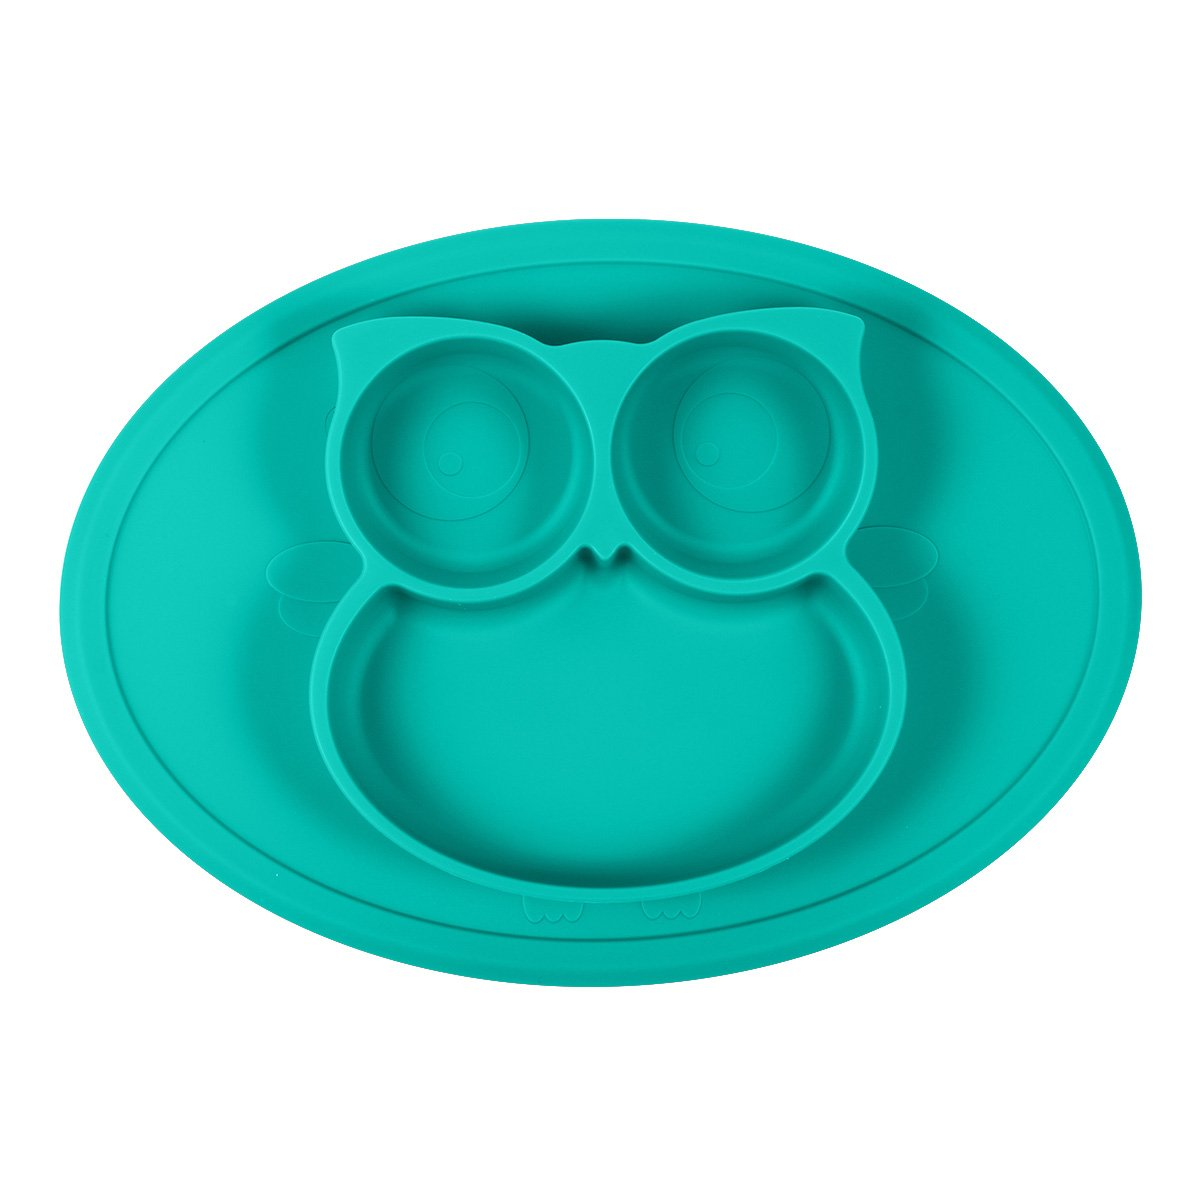 Silicone Mini Placemat - Baby Plate - Toddler Feeding Mat by Hanfeng- Strong Suction Base - Portable - 100% Food Grade Silicone - Fits Most highchairs, Microwave and Dishwasher Safe (Green)